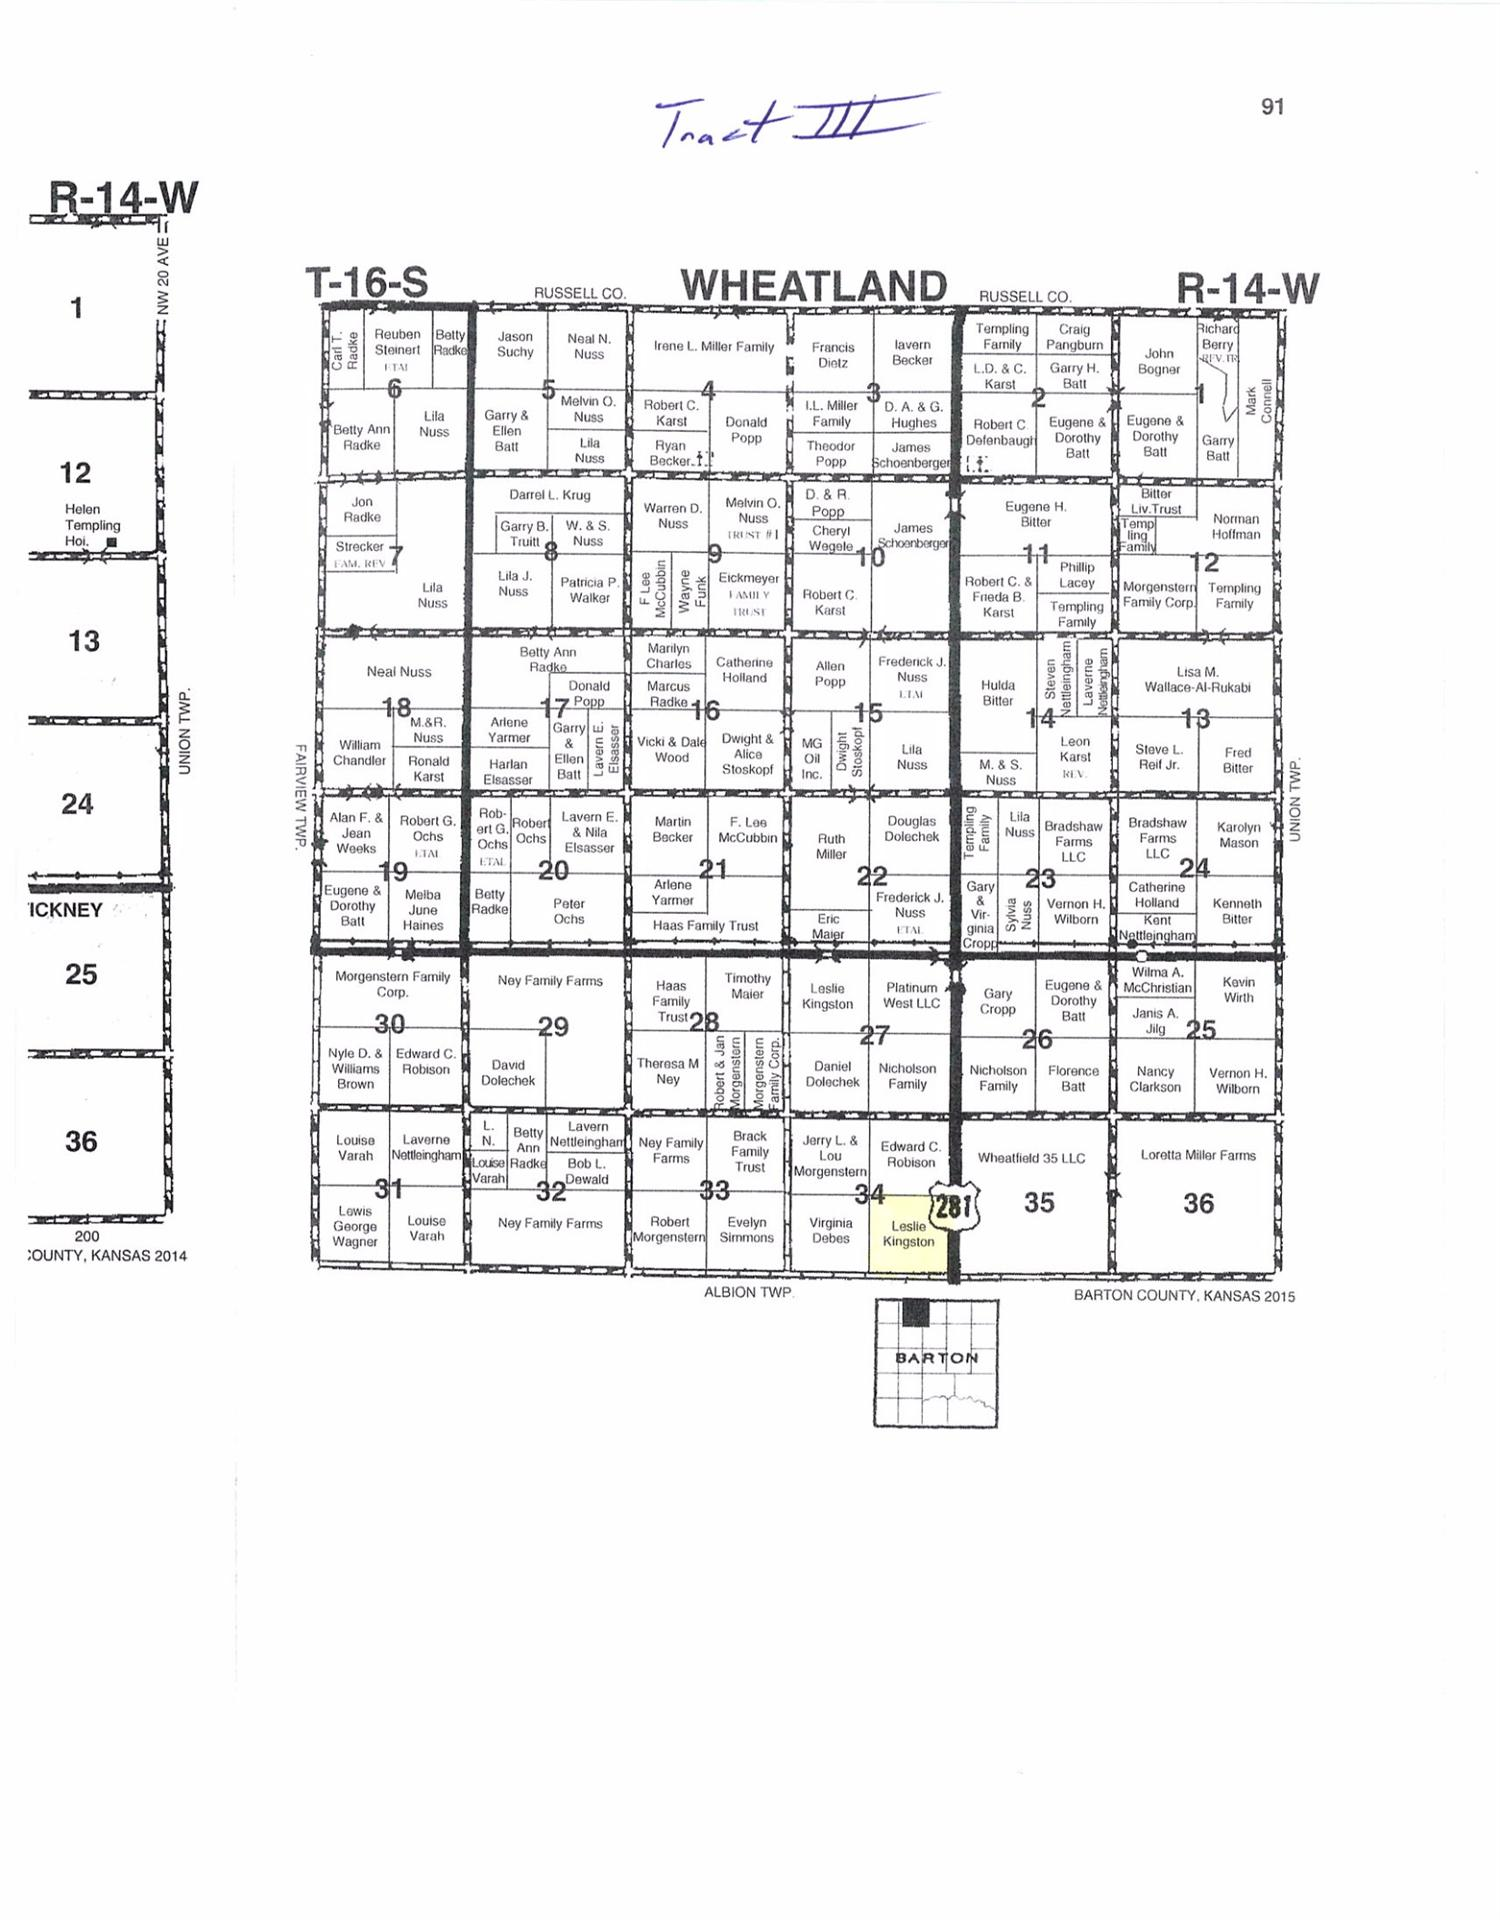 Good terraced farmland and pasture with highway frontage.  Pasture has spring feed pond and good barbed wire fence.  Total acres 158.06 +/-, Cropland 100.97 +/- acres, Pasture 52.03 +/- acres.  Land is selling with surface rights only.  Oil production and minerals rights are reserved.